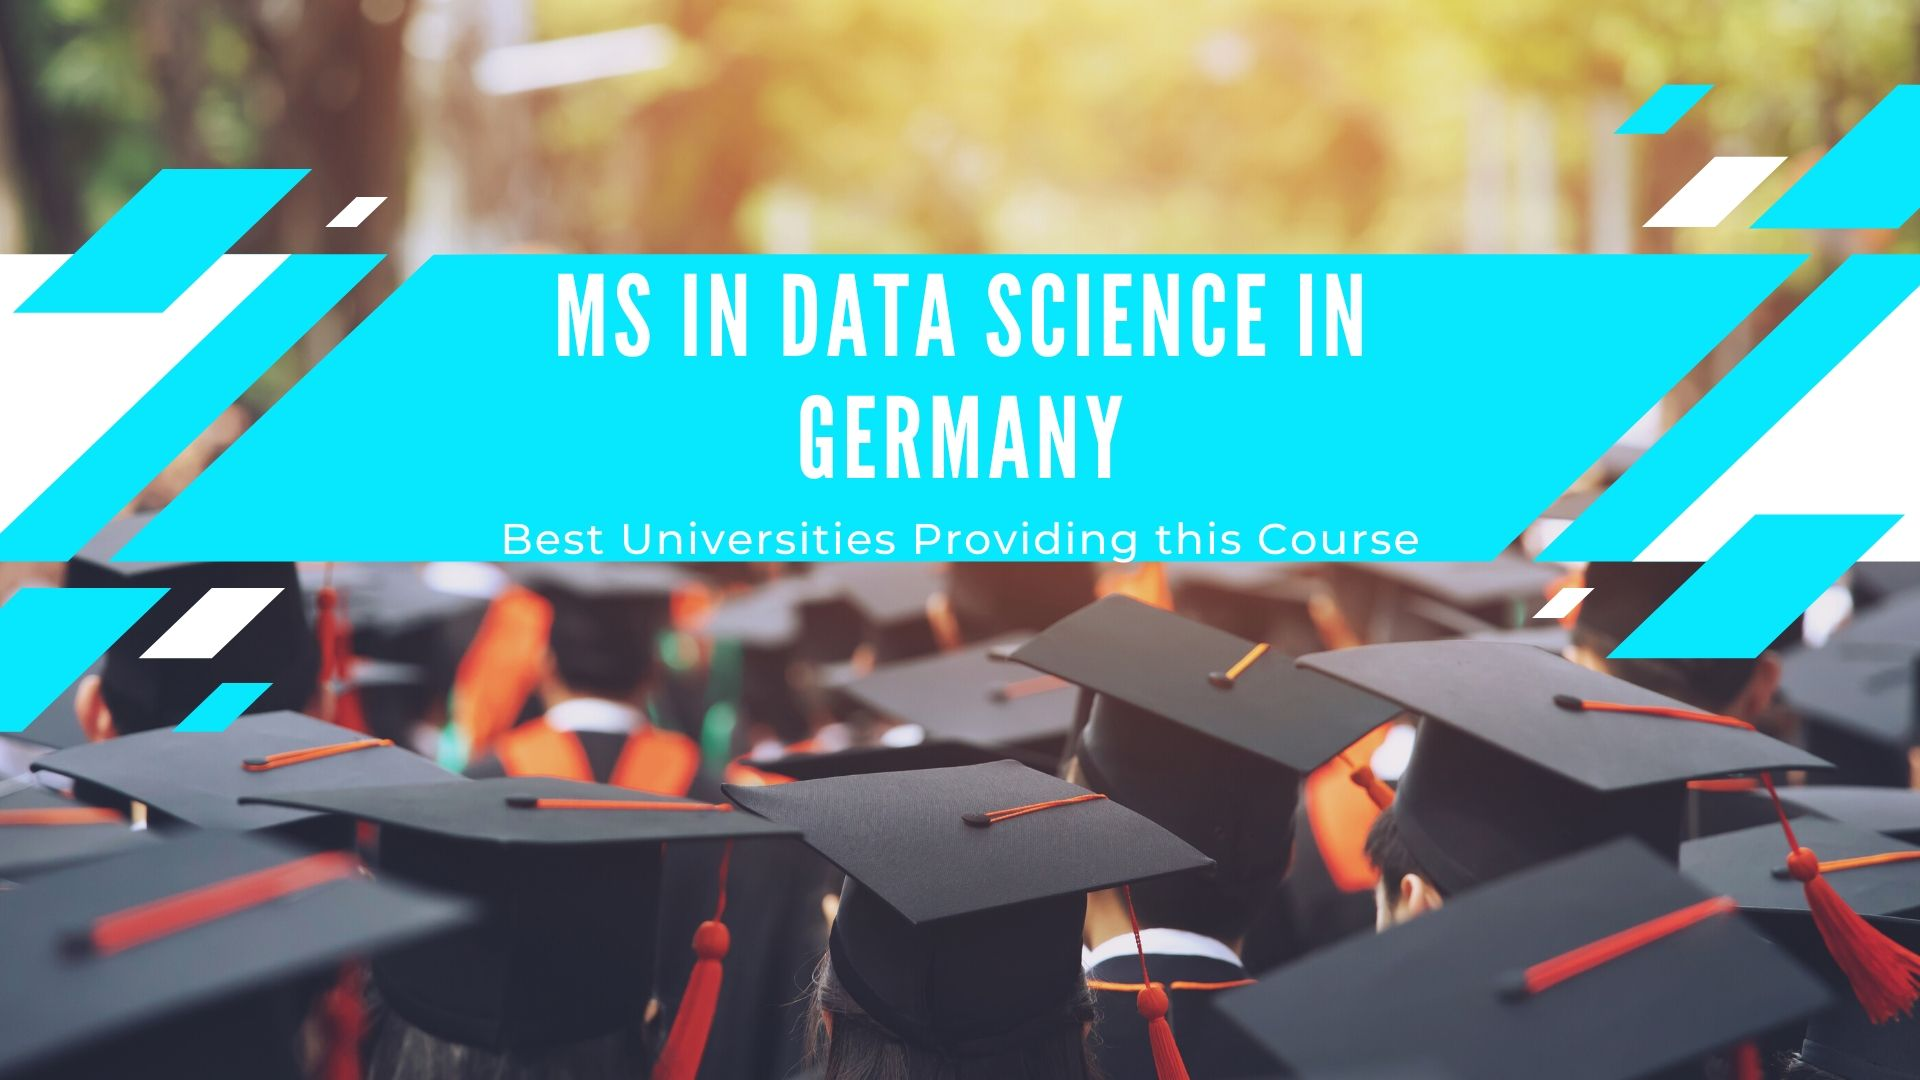 Best Universities for MS in Data Science in Germany - 8 ...